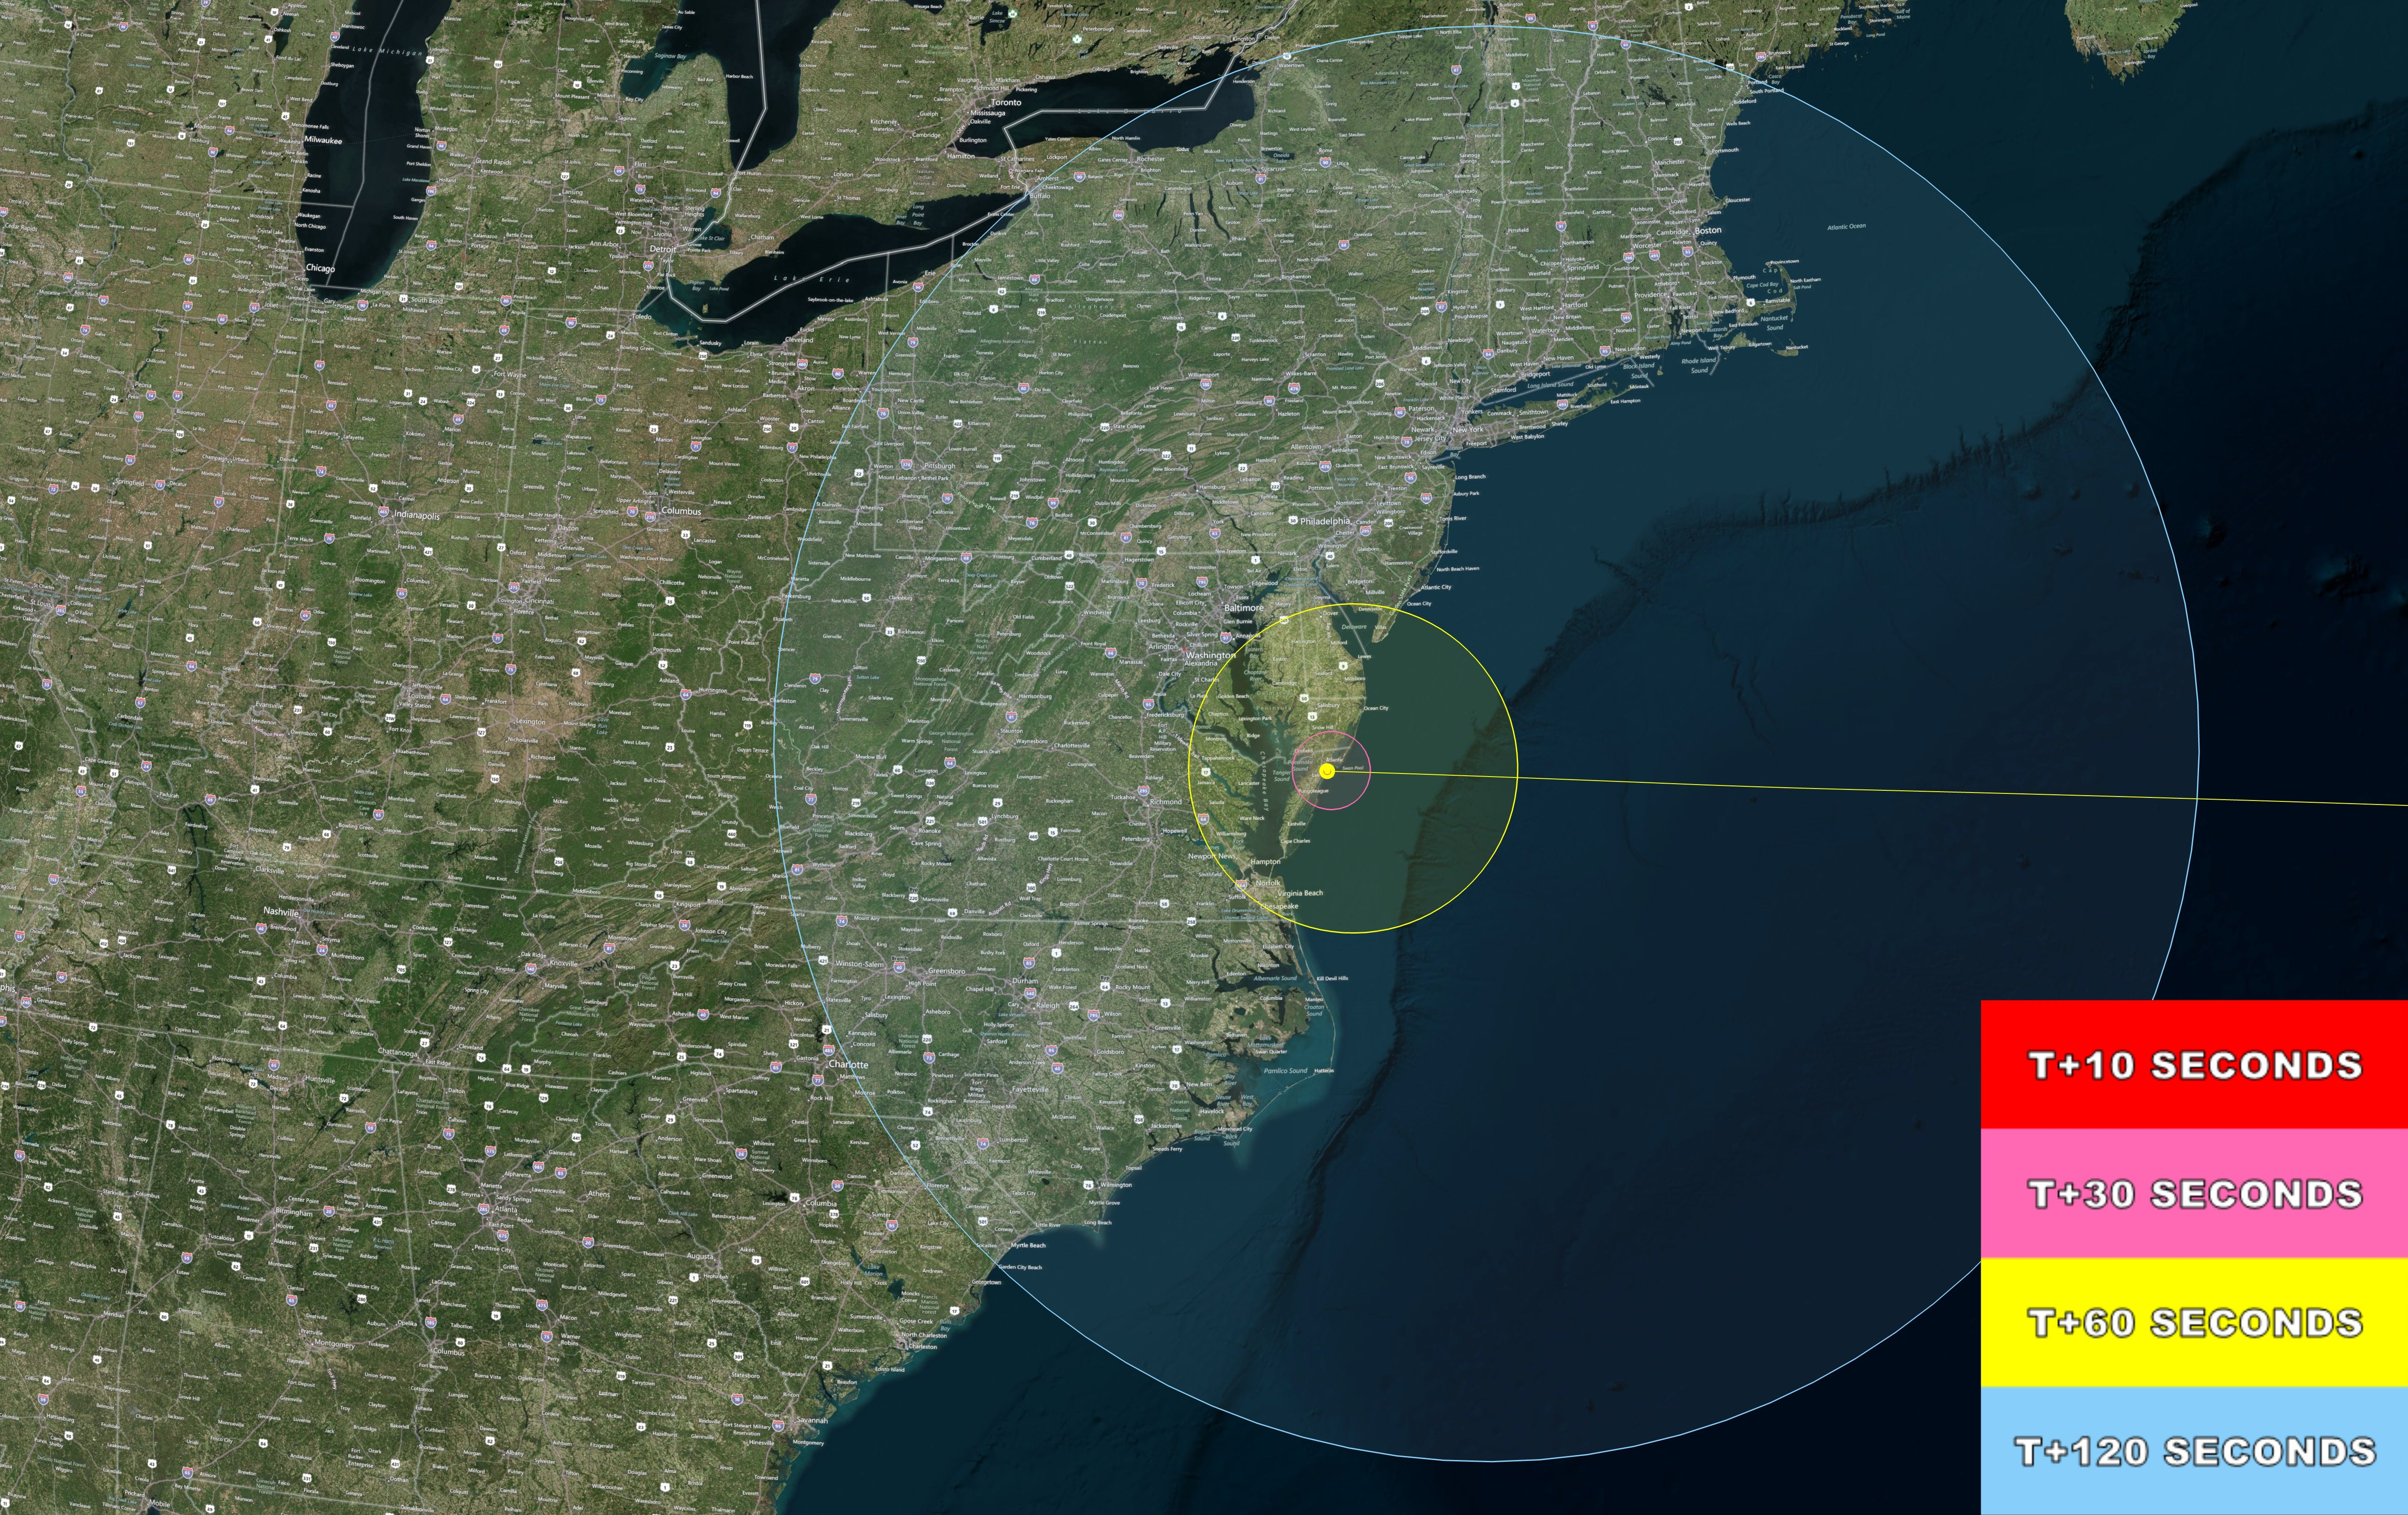 Public Viewing Sites Established For NASA LADEE Moon Mission From - Us map day nasa